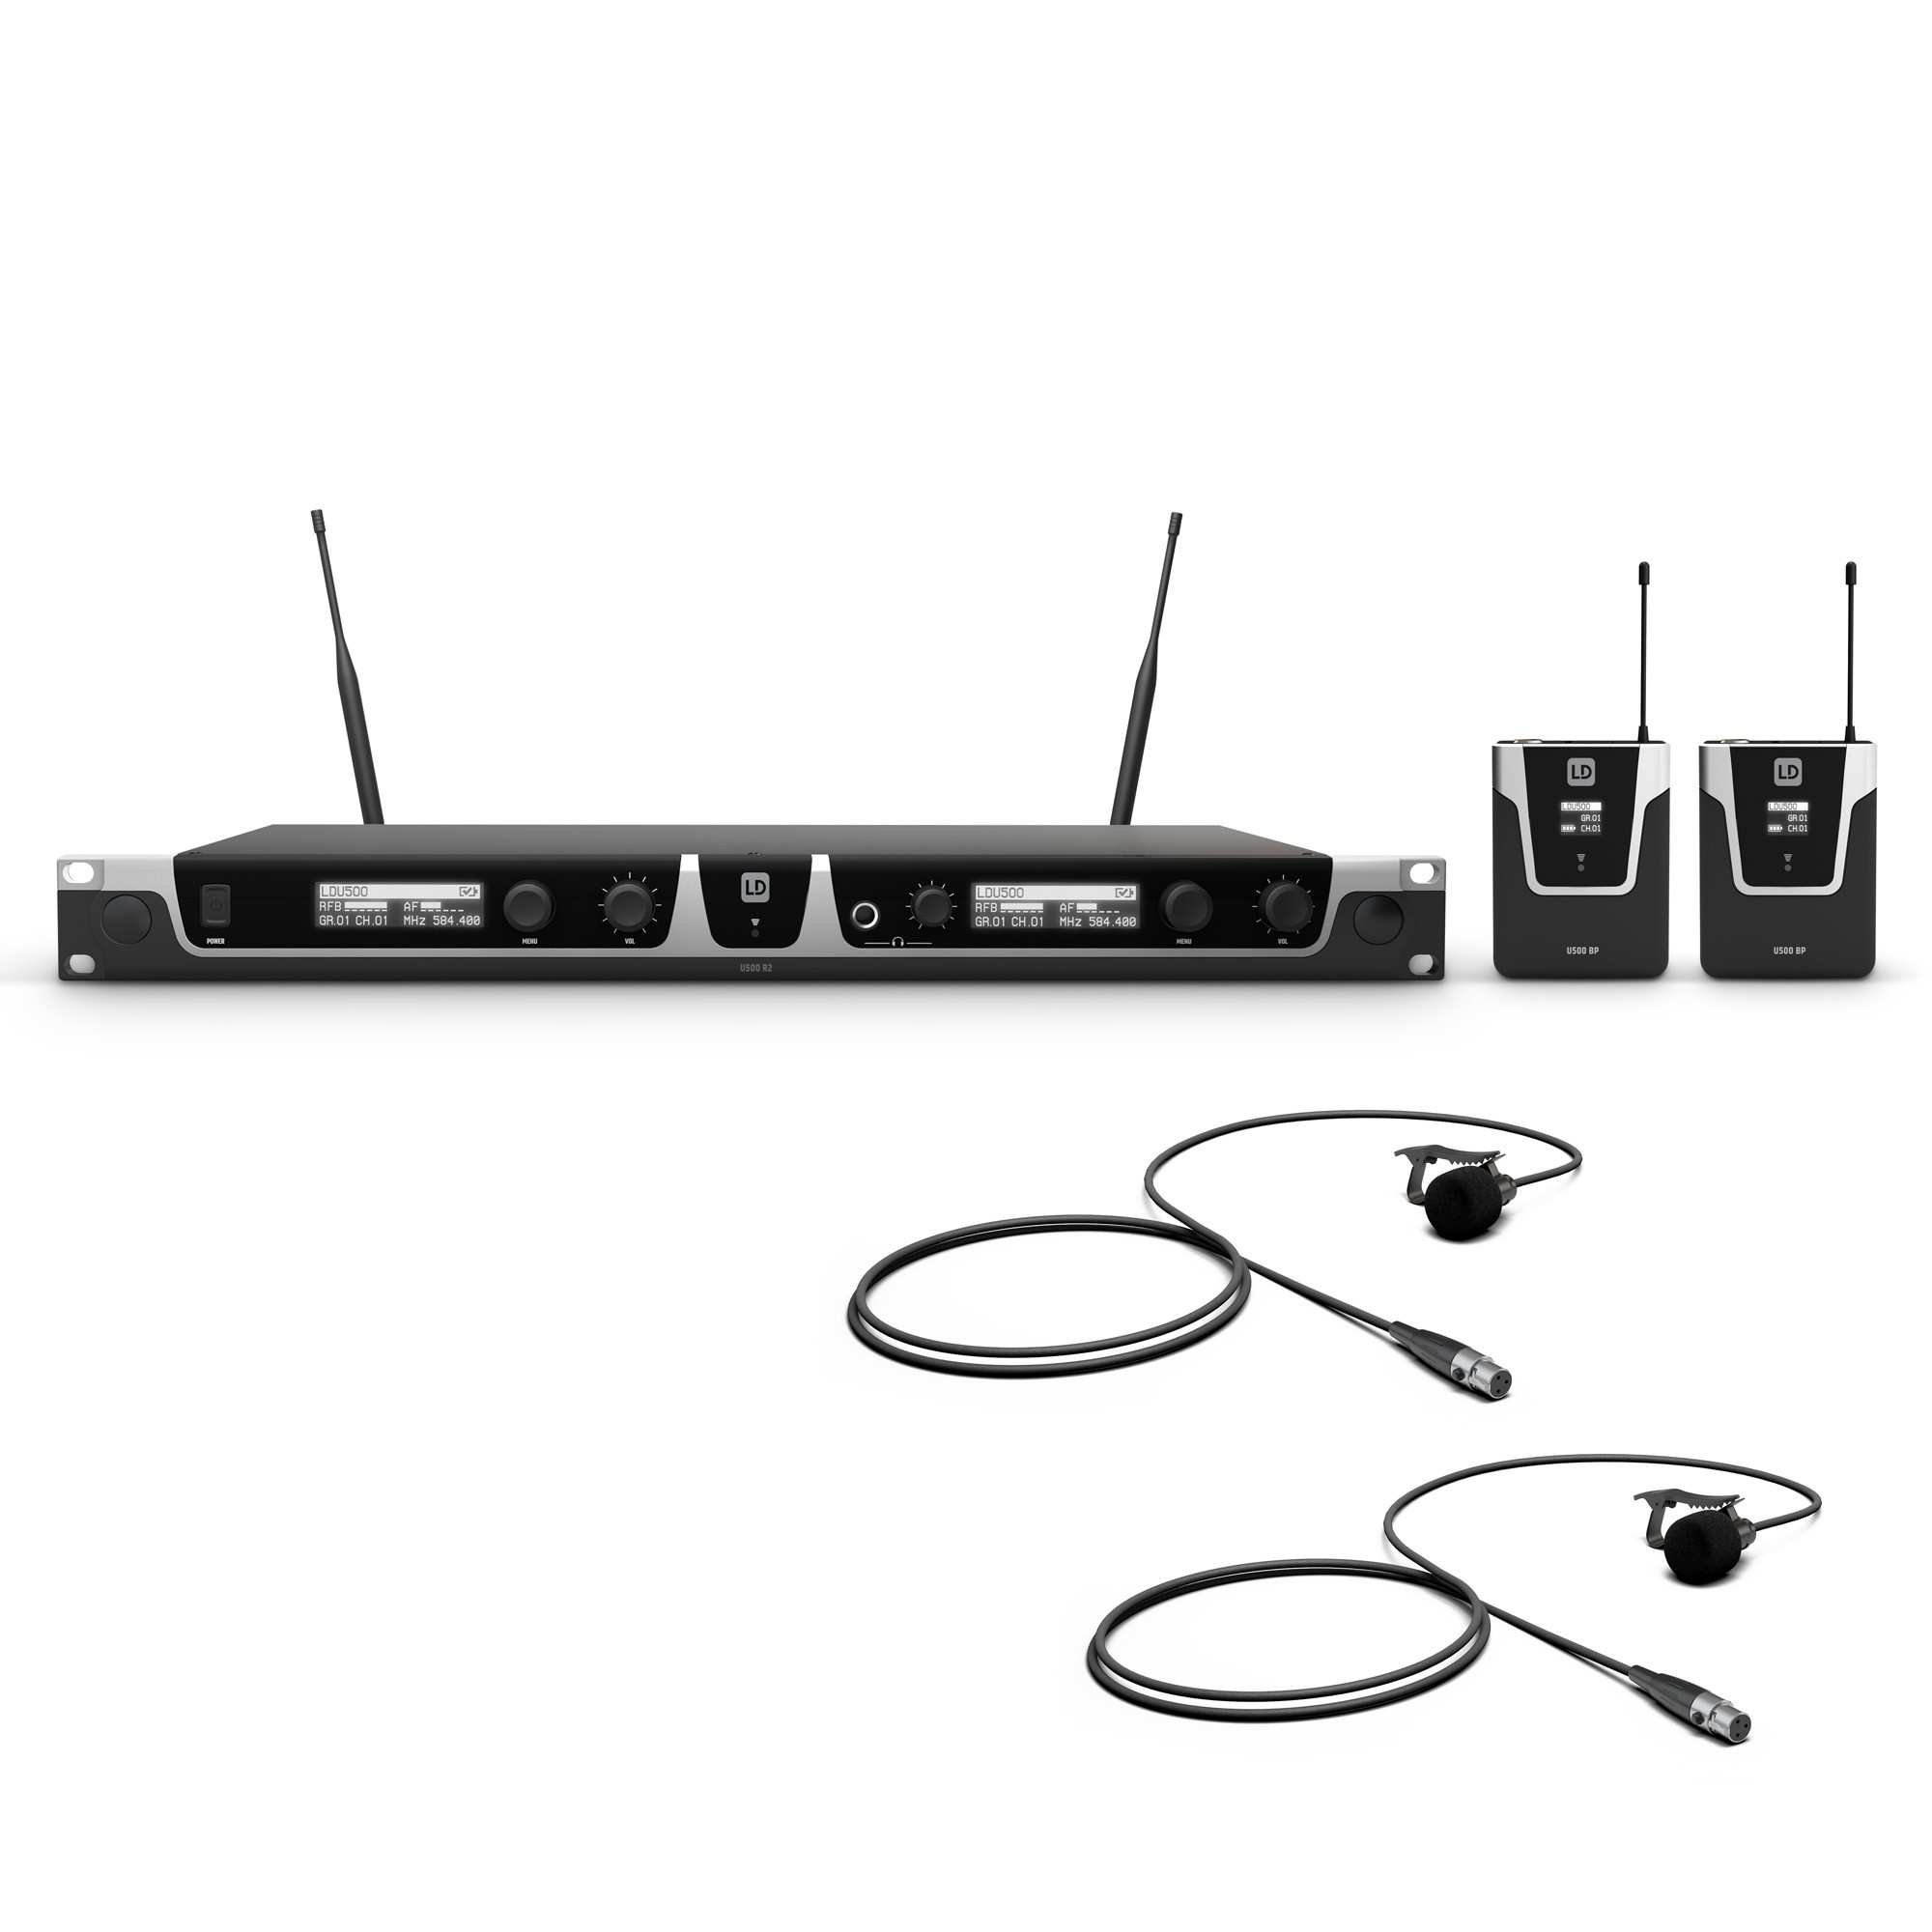 U508 BPL 2 Wireless Microphone System with 2 x Bodypack and 2 x Lavalier Microphone